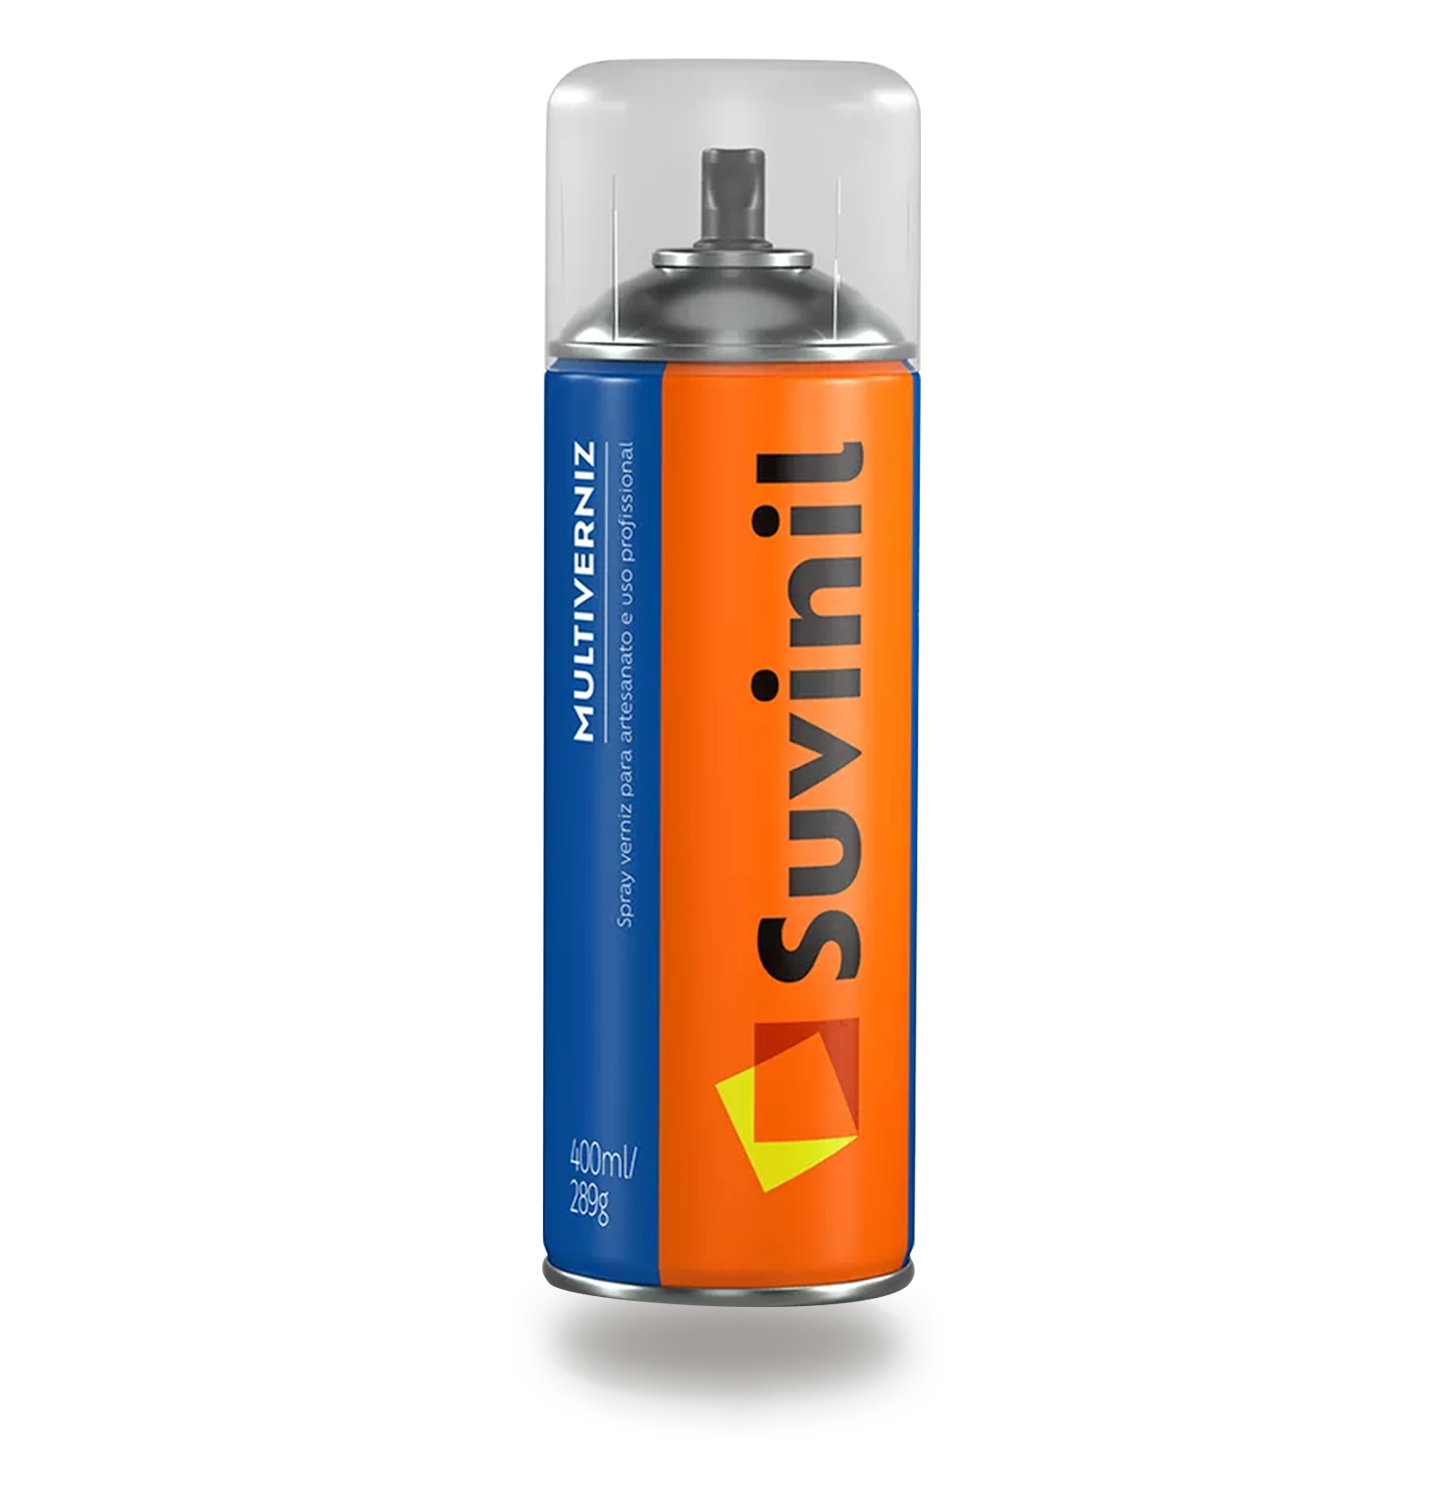 Suvinil Spray Fosco